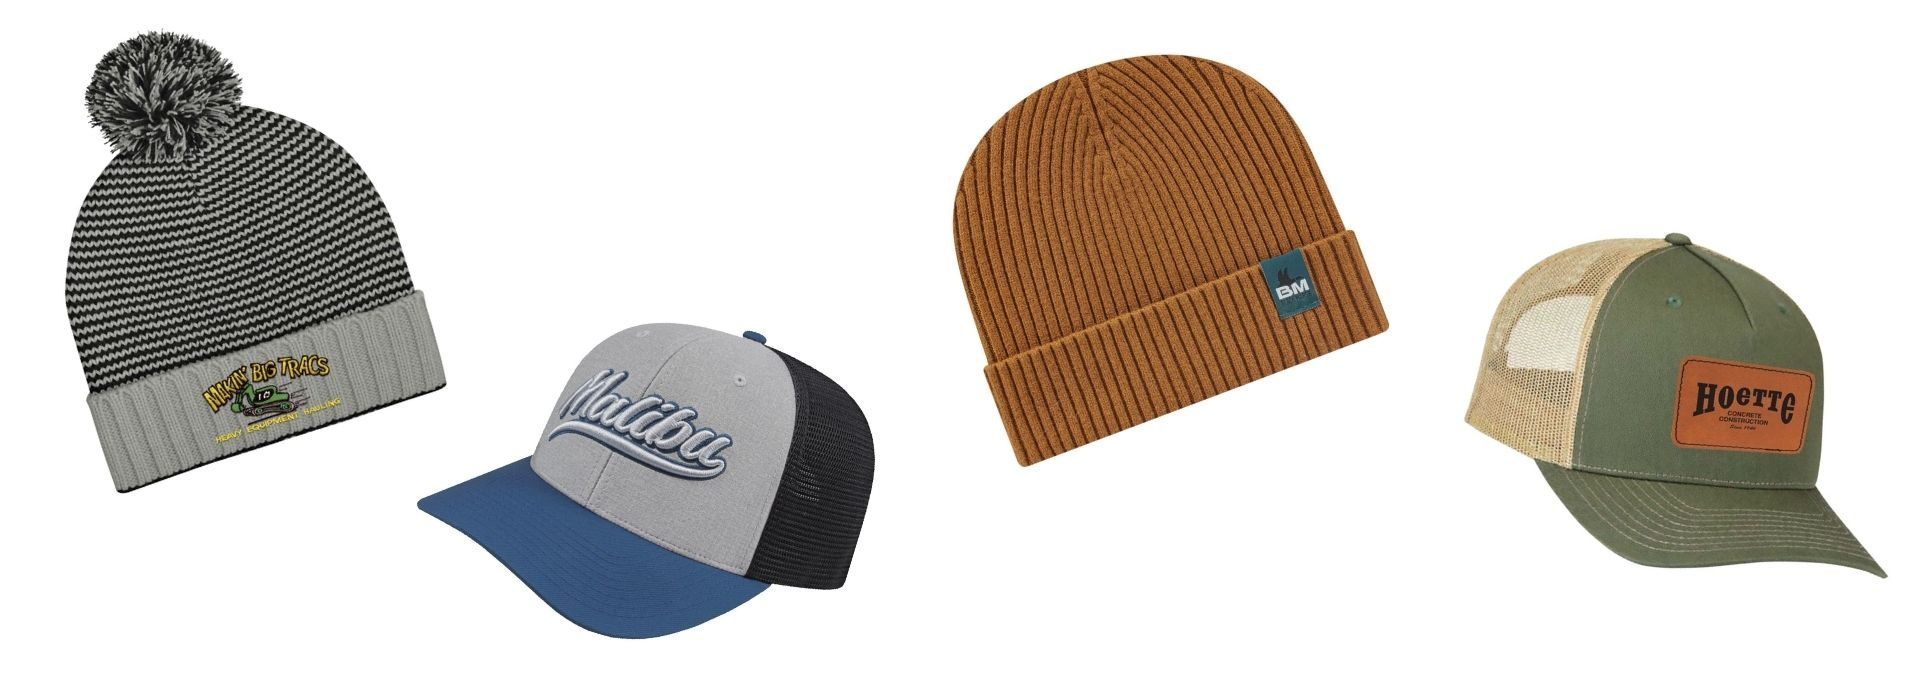 Custom Branded Hats. Custom embroidery hats or screen printed hats for your branded business. Seattle screen printing and promotional products supplier